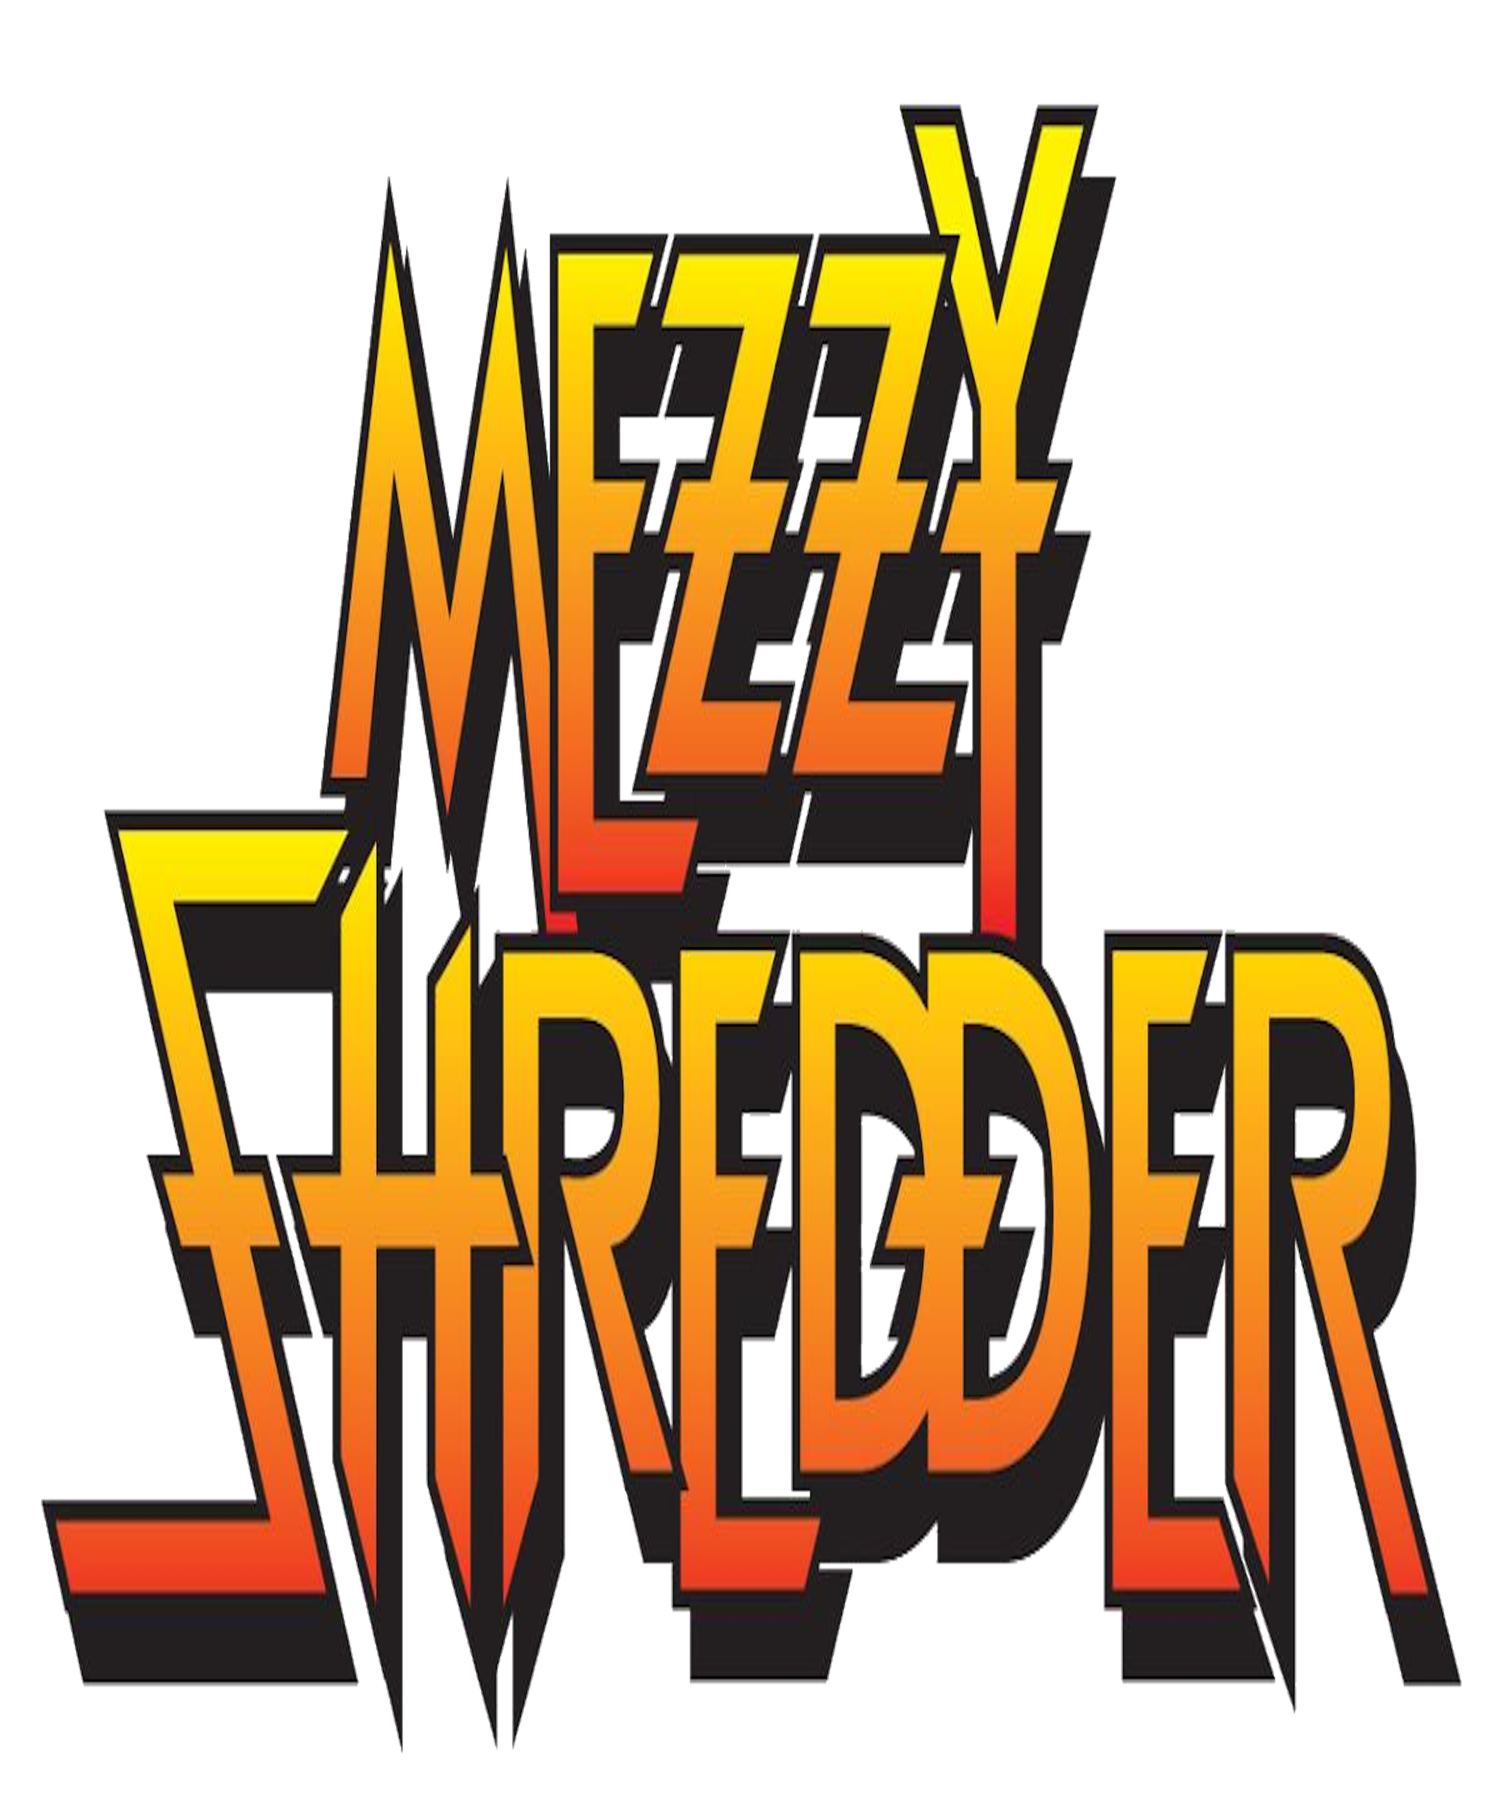 Mezzy Shredder